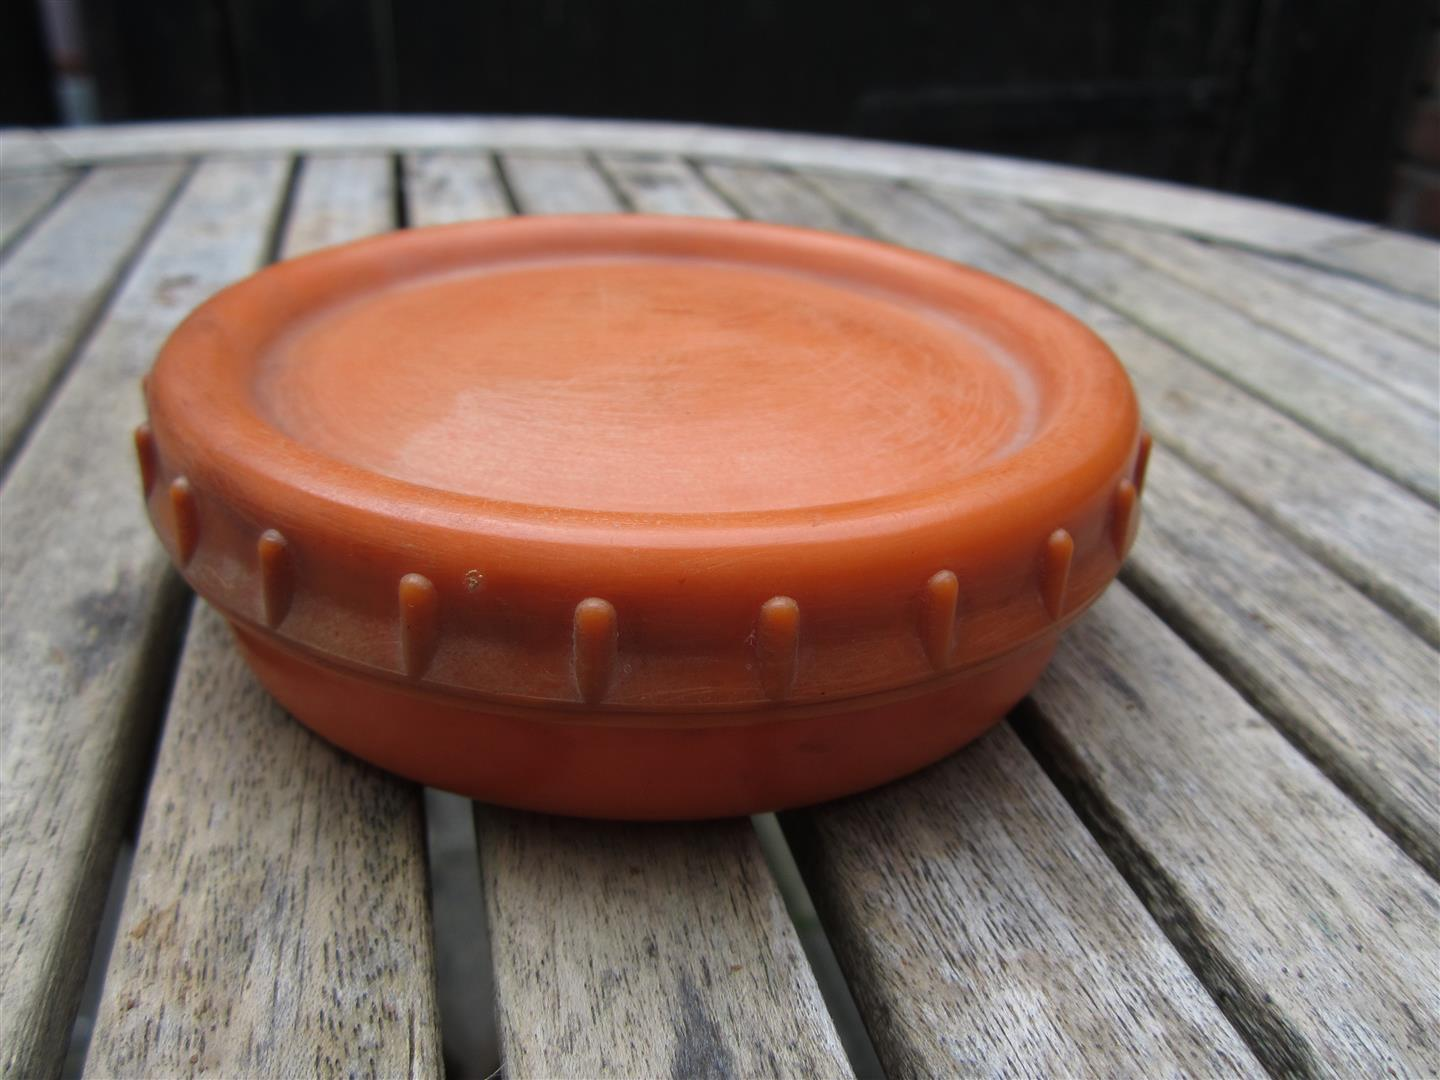 WW2 WH Orange Bakelite Butterdish